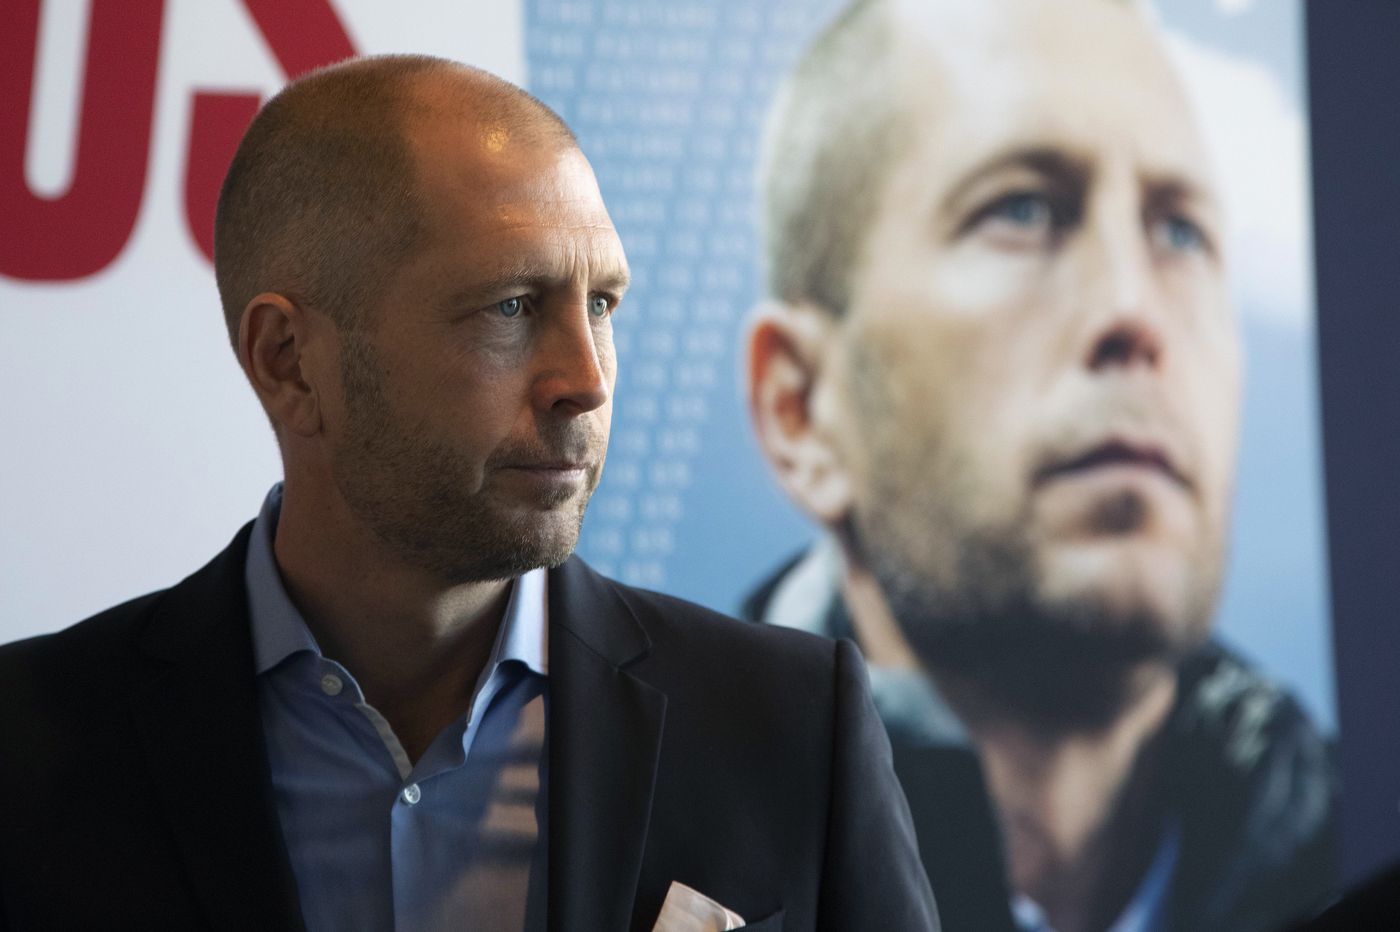 What will Gregg Berhalter's U.S. men's soccer team look like on the field?